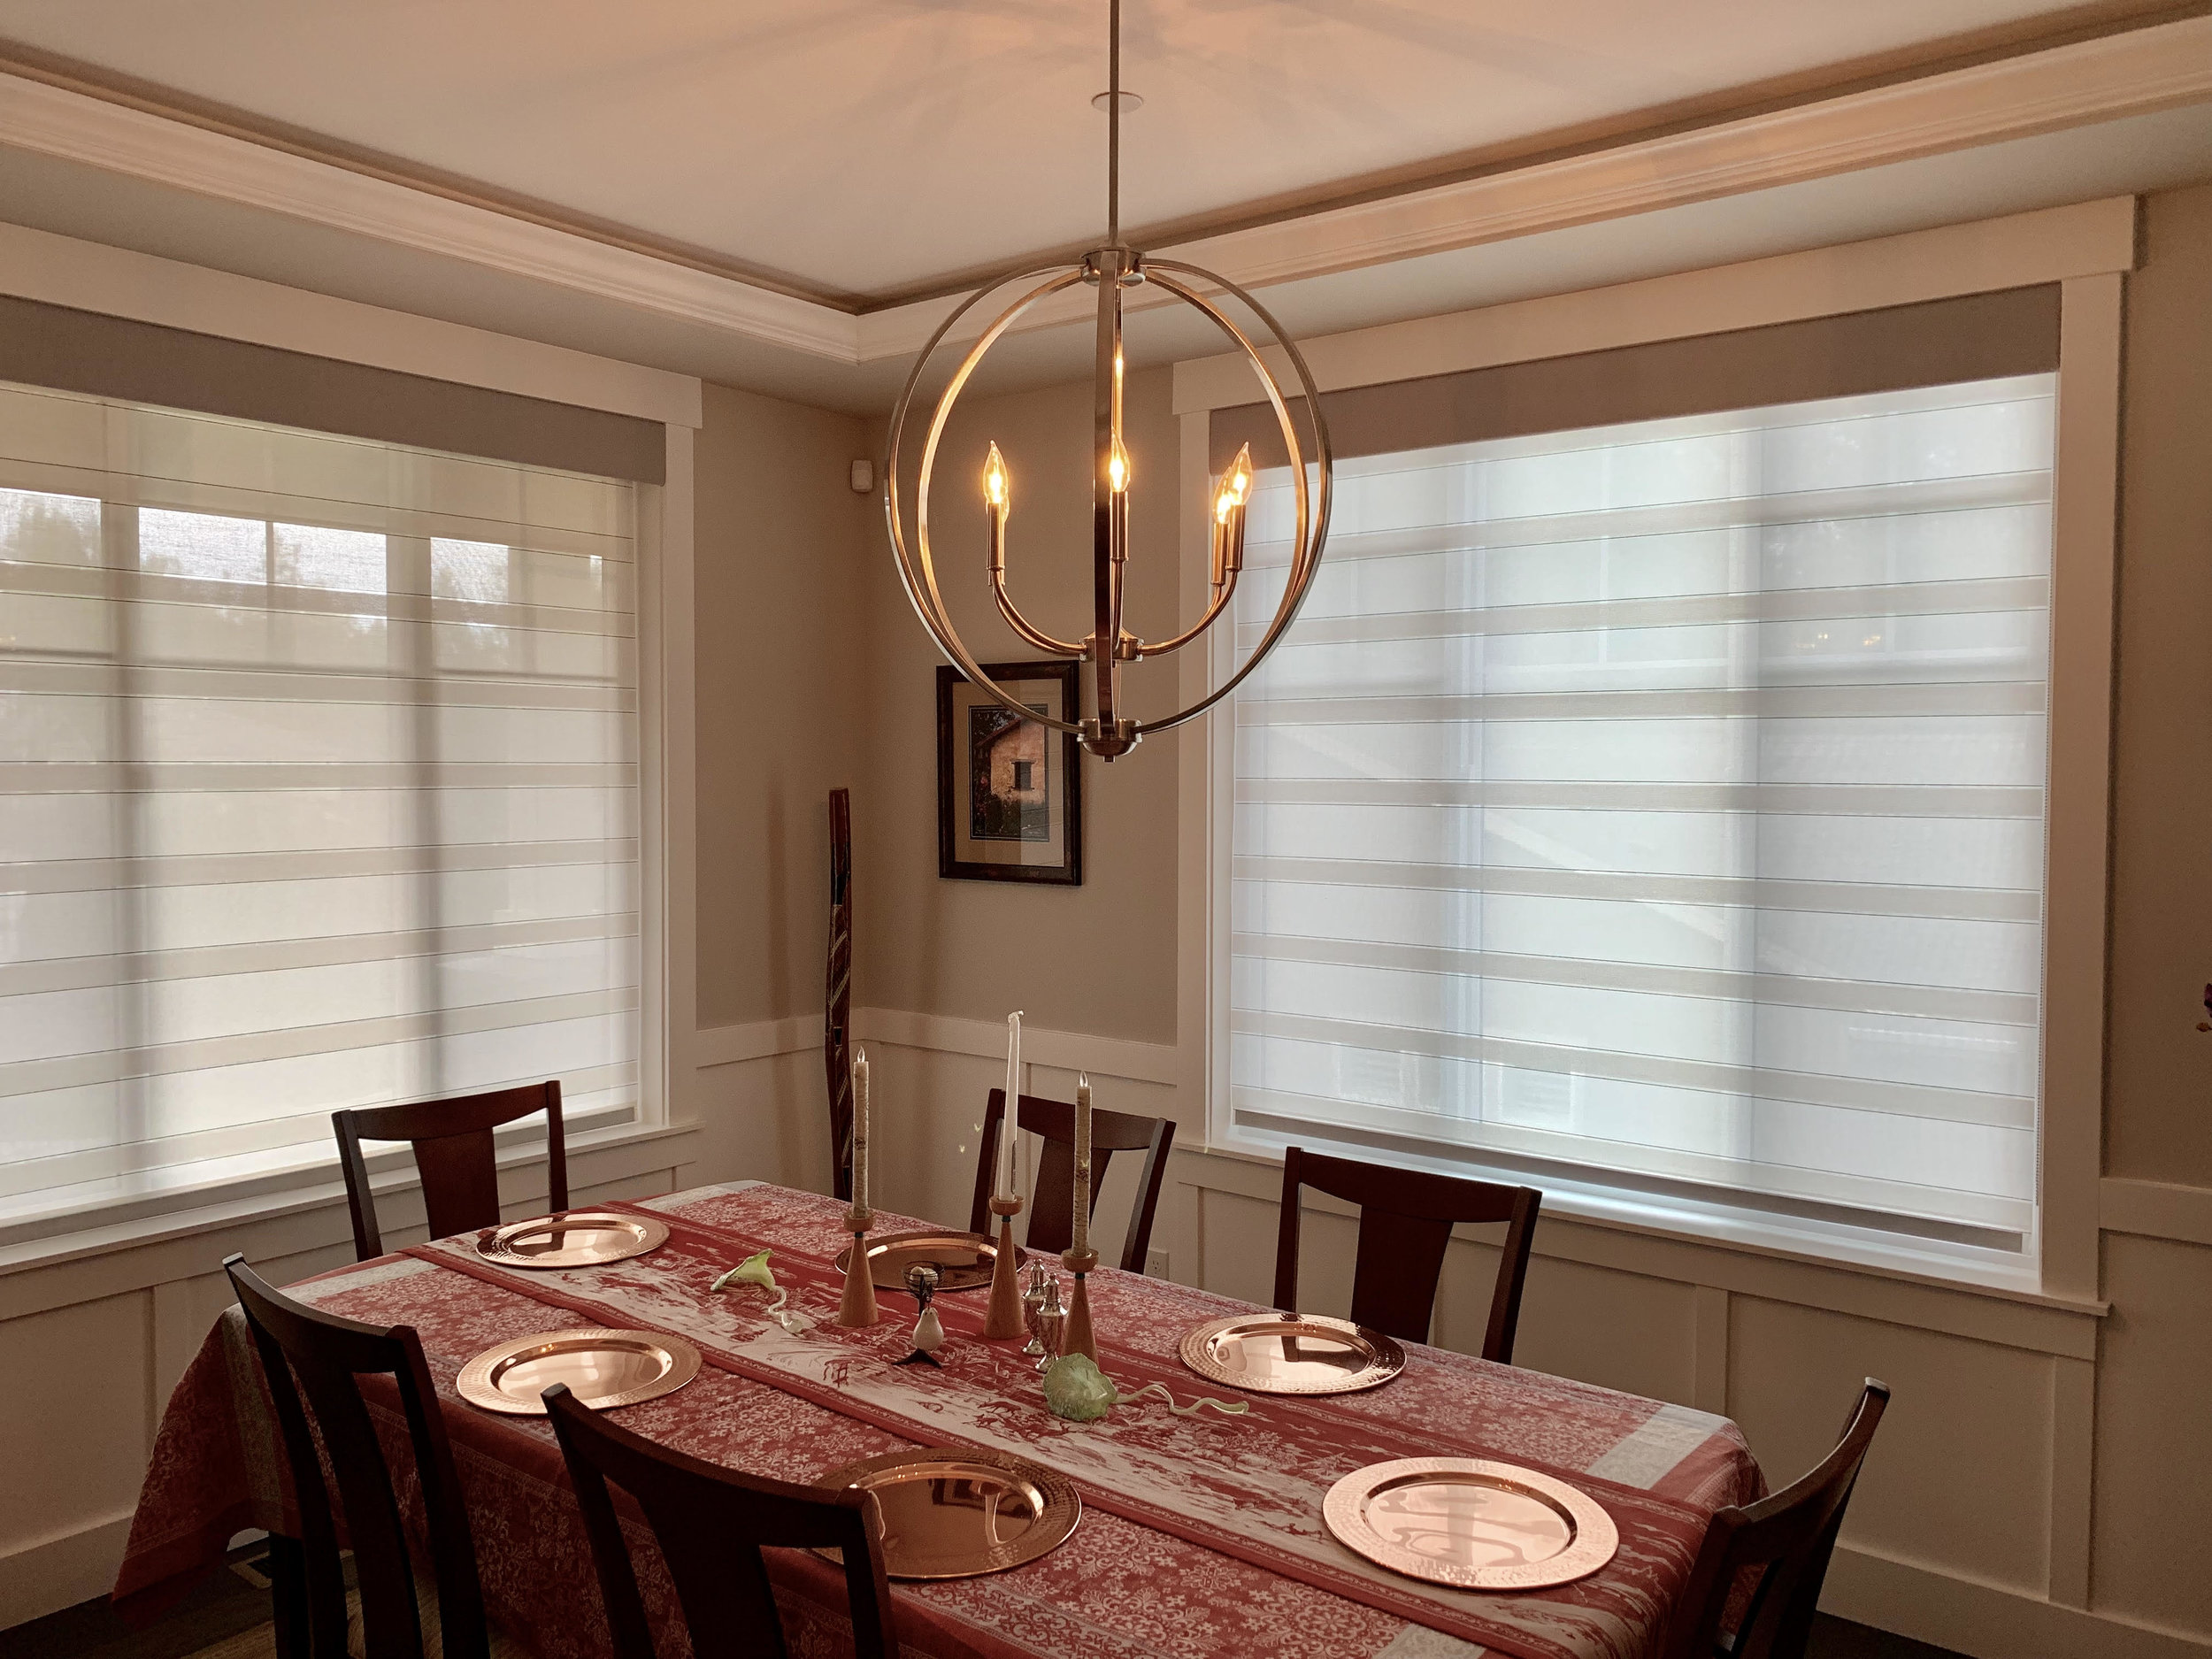 Translucent Roller Shade Providing UV Protection